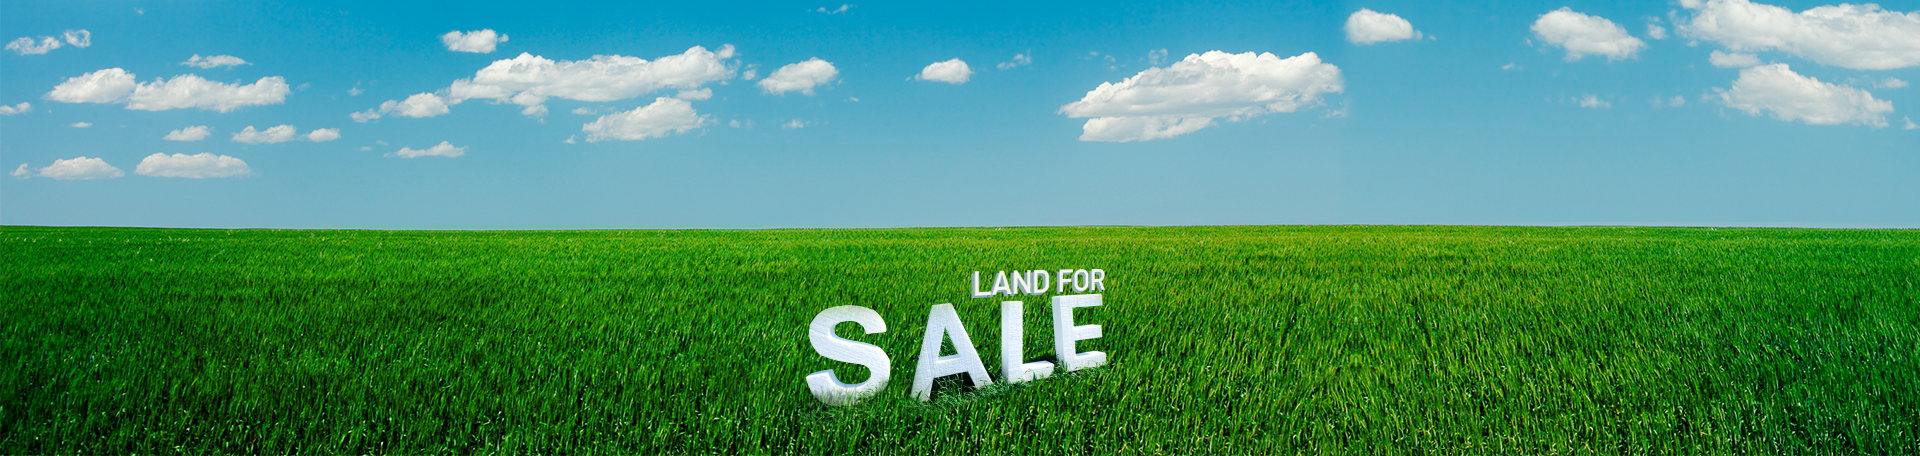 land_for_sale_1920x456_crop_and_resize_to_fit_478b24840a